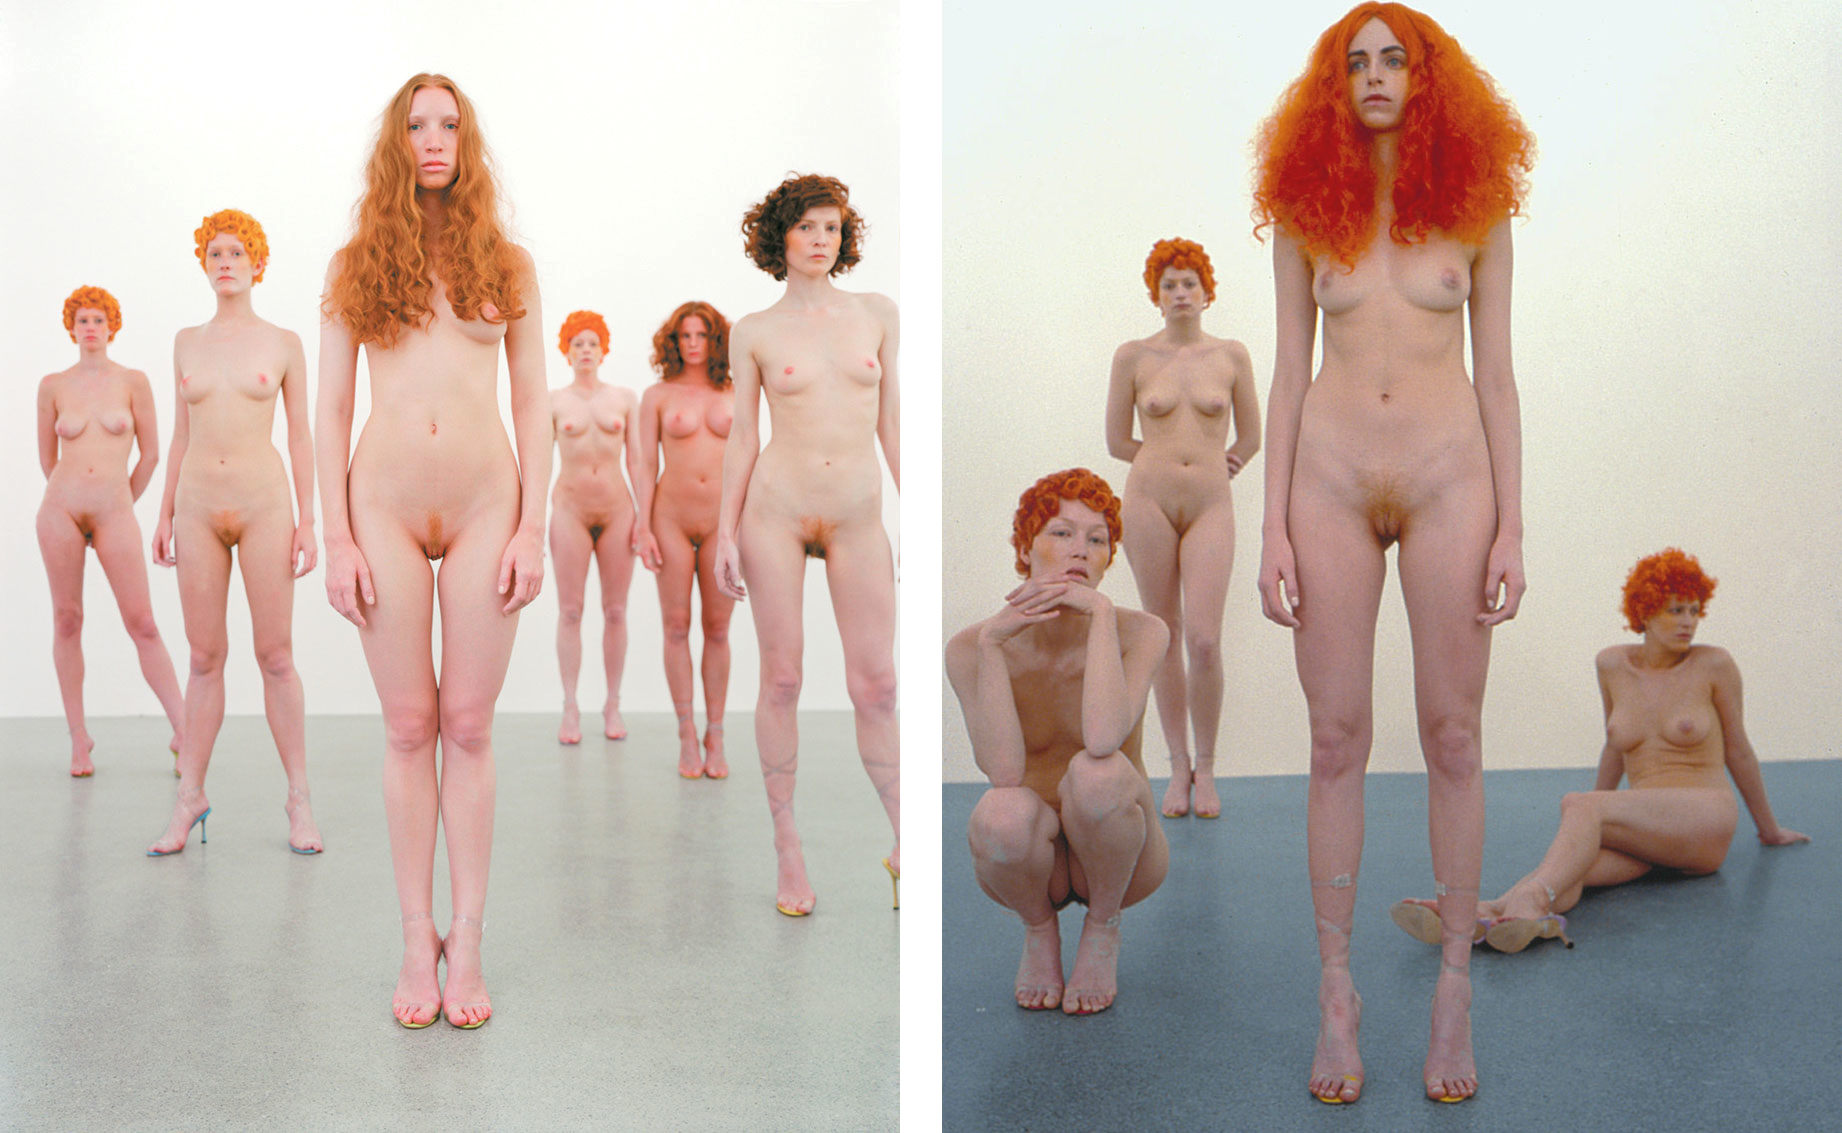 Vanessa Beecroft, VB43 No. 2, 2000, Image/s courtesy of Gagosian Gallery